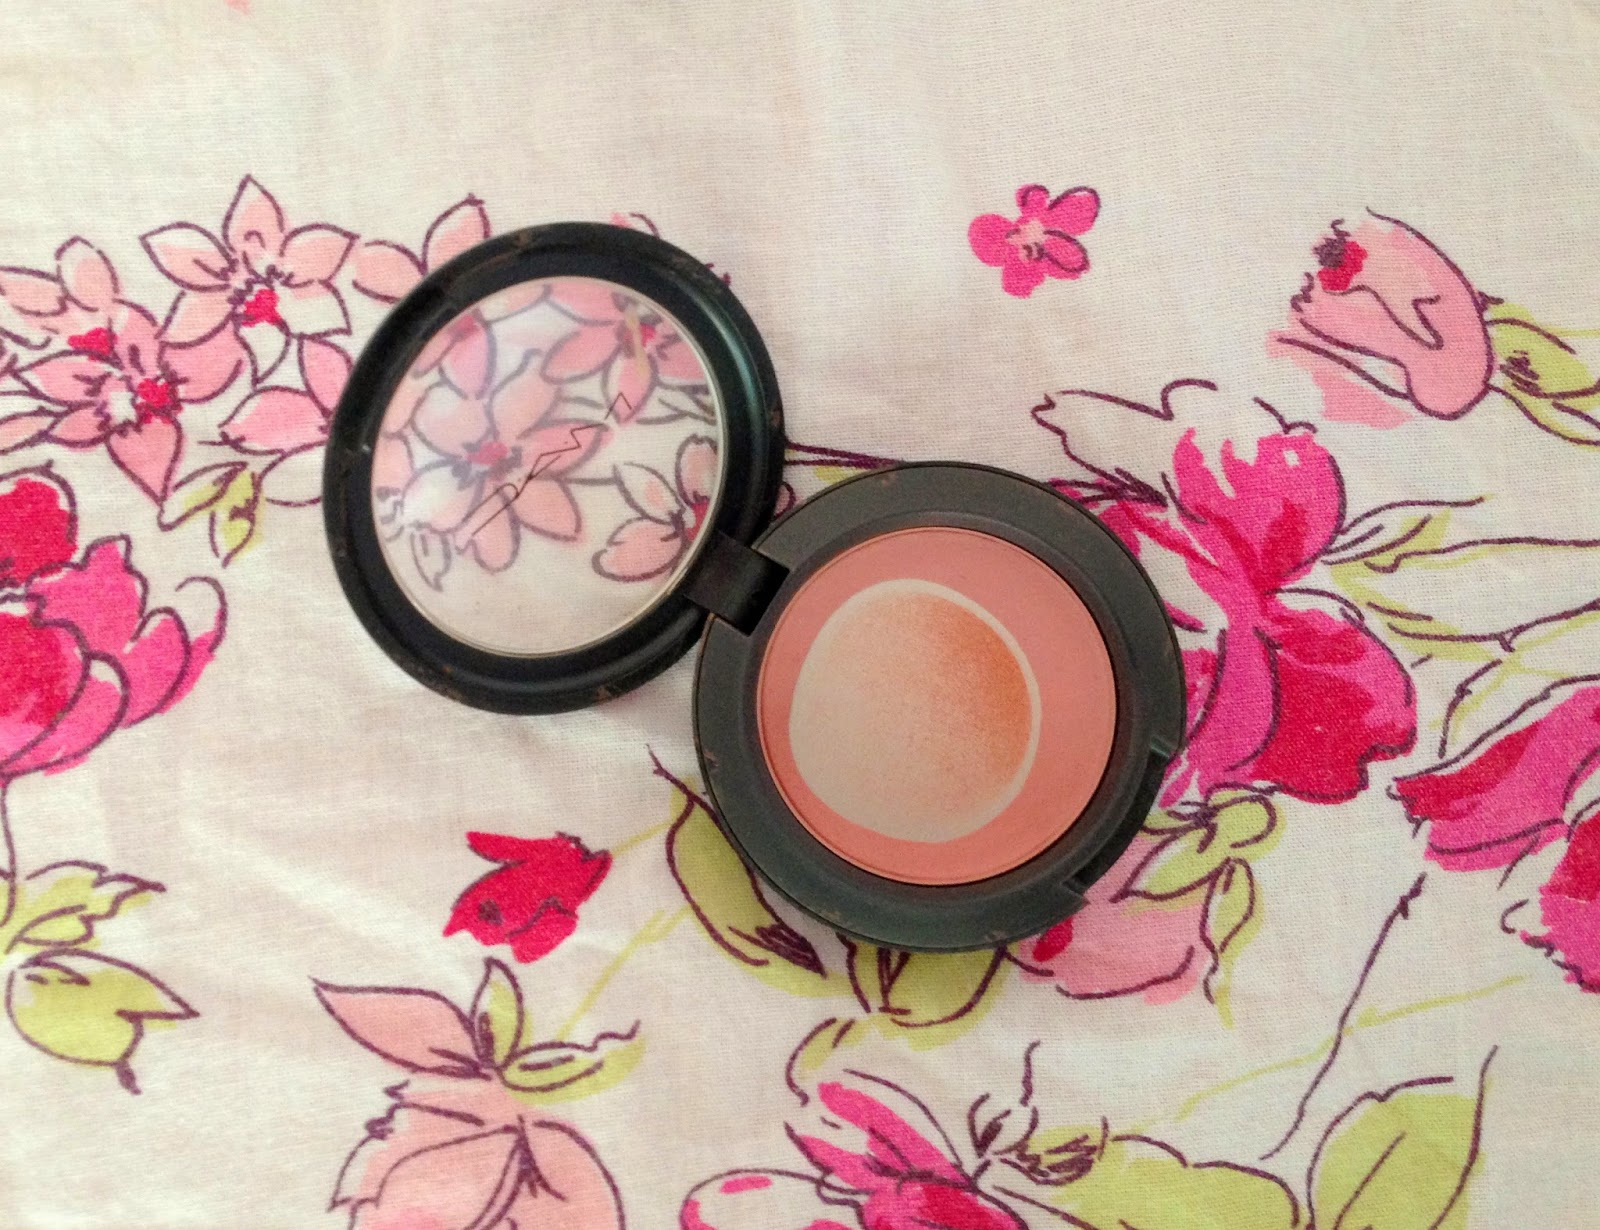 Letmecrossover_project_pan_ten_10_beauty_blog_products_mac_blush_mocha